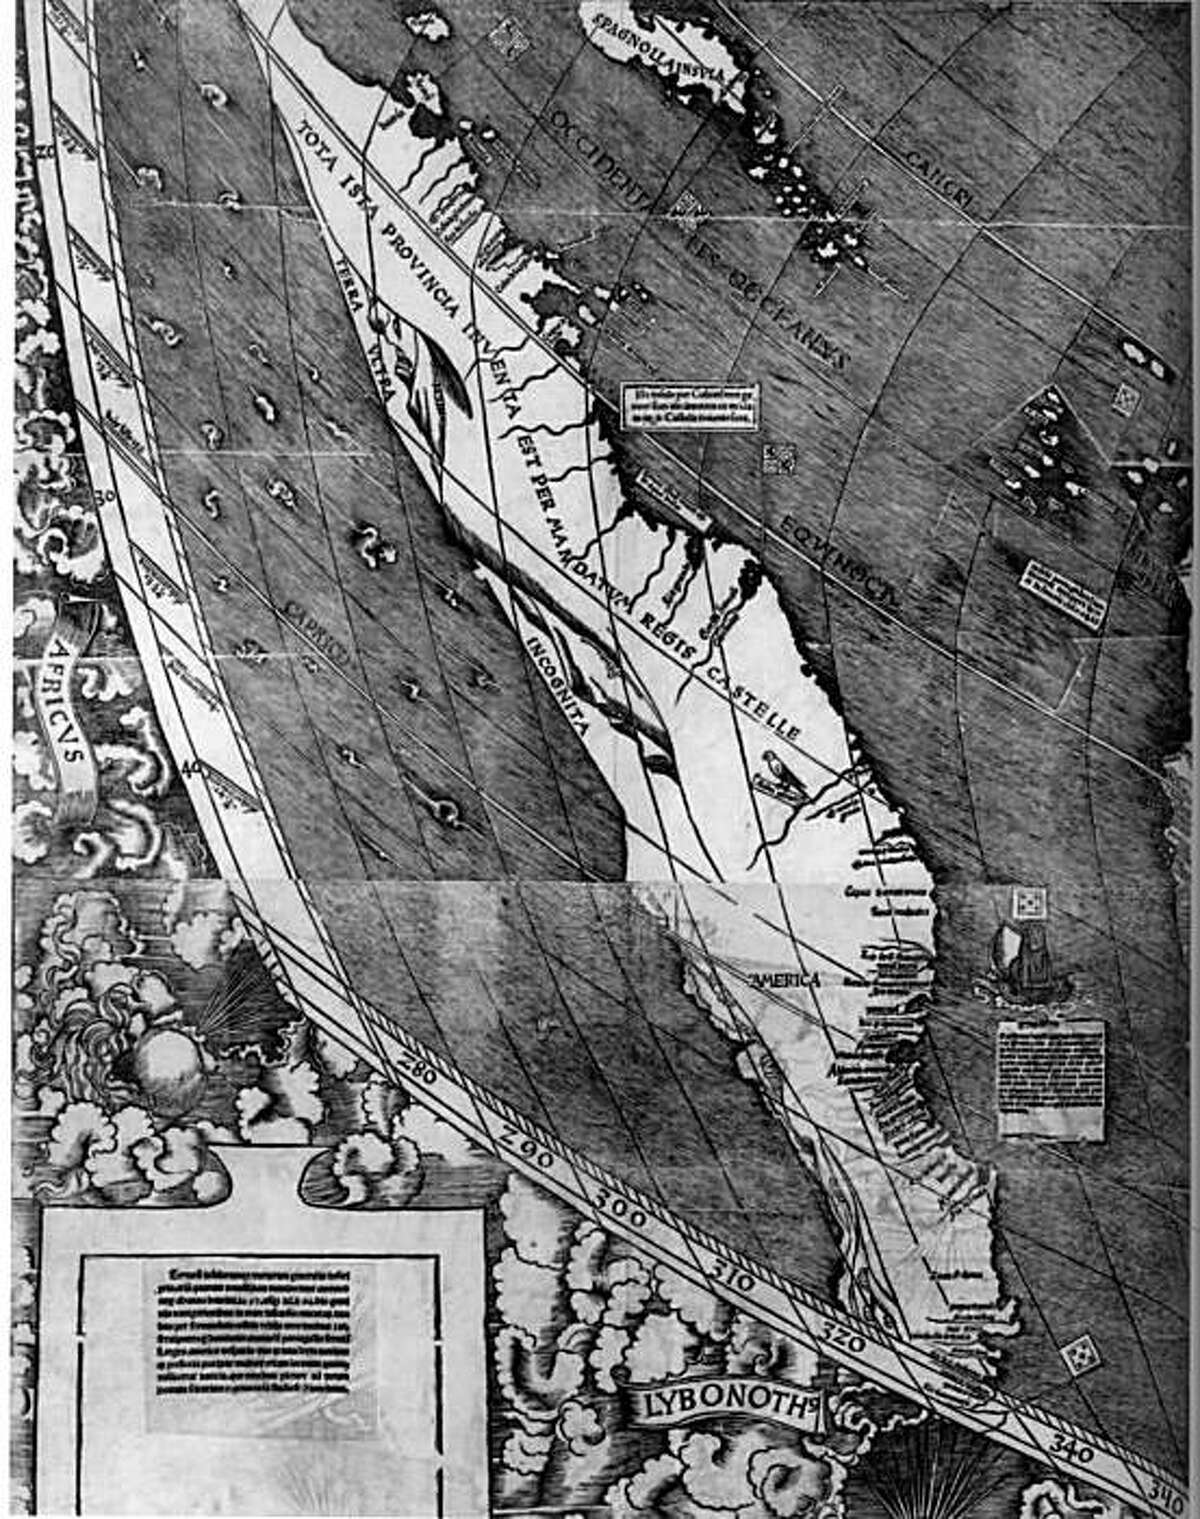 South America on the Waldseemüller map of 1507 the first map to identify any part of the New World as America- a name coined by the map's makers.